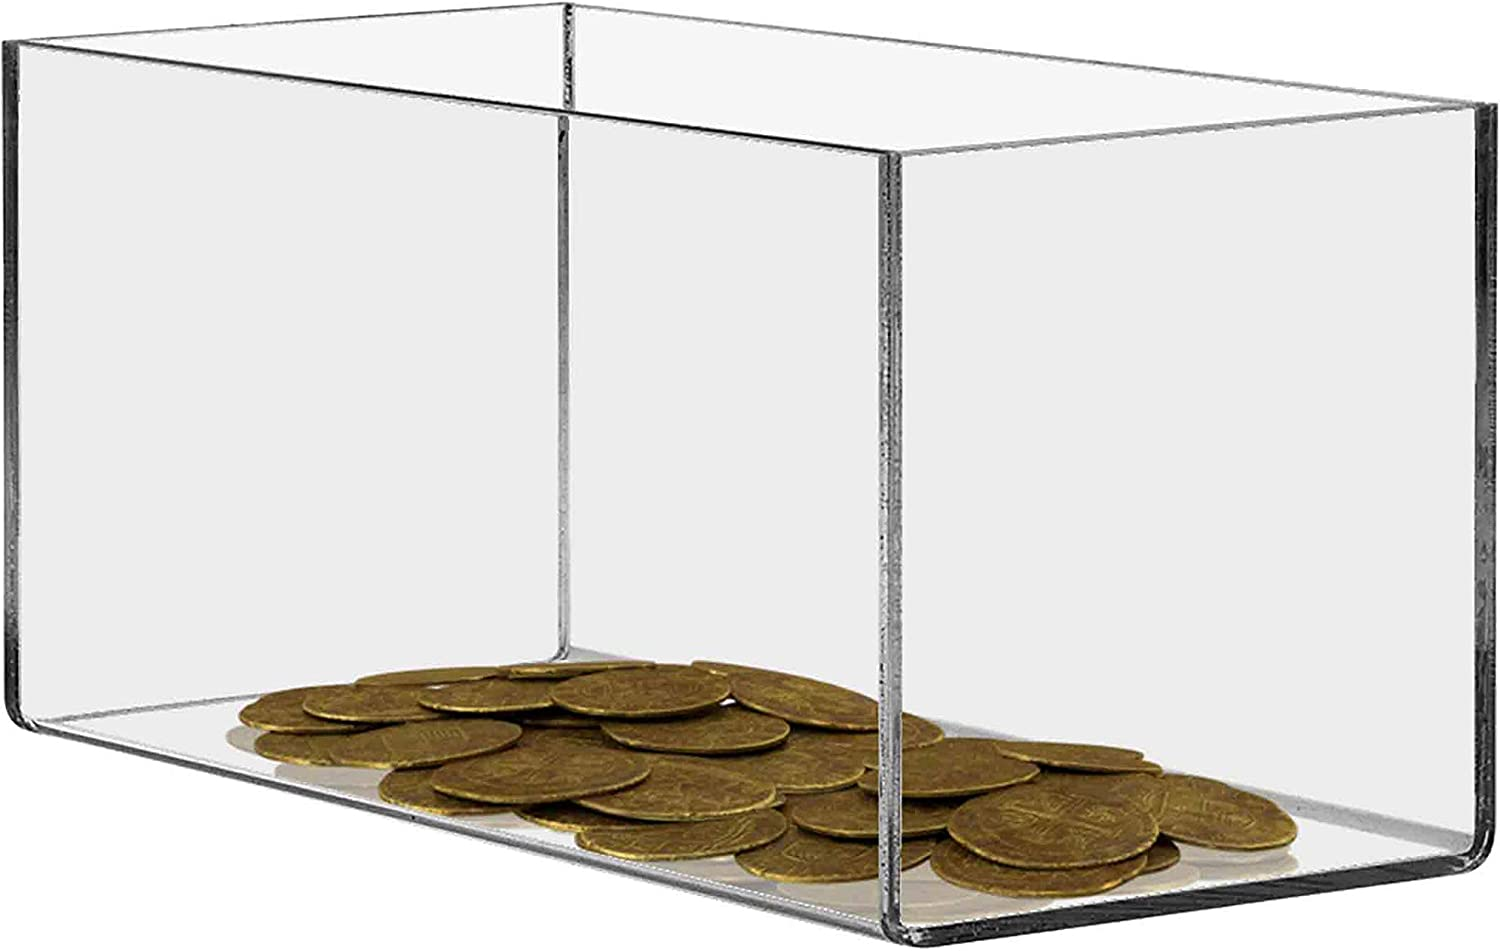 Marketing Holders Pedestal Display Box 8w x 8d x 12h Showcase Cube Display Collectible Cover Trinkets Trophy Display 5 Sided Square Activity Cube